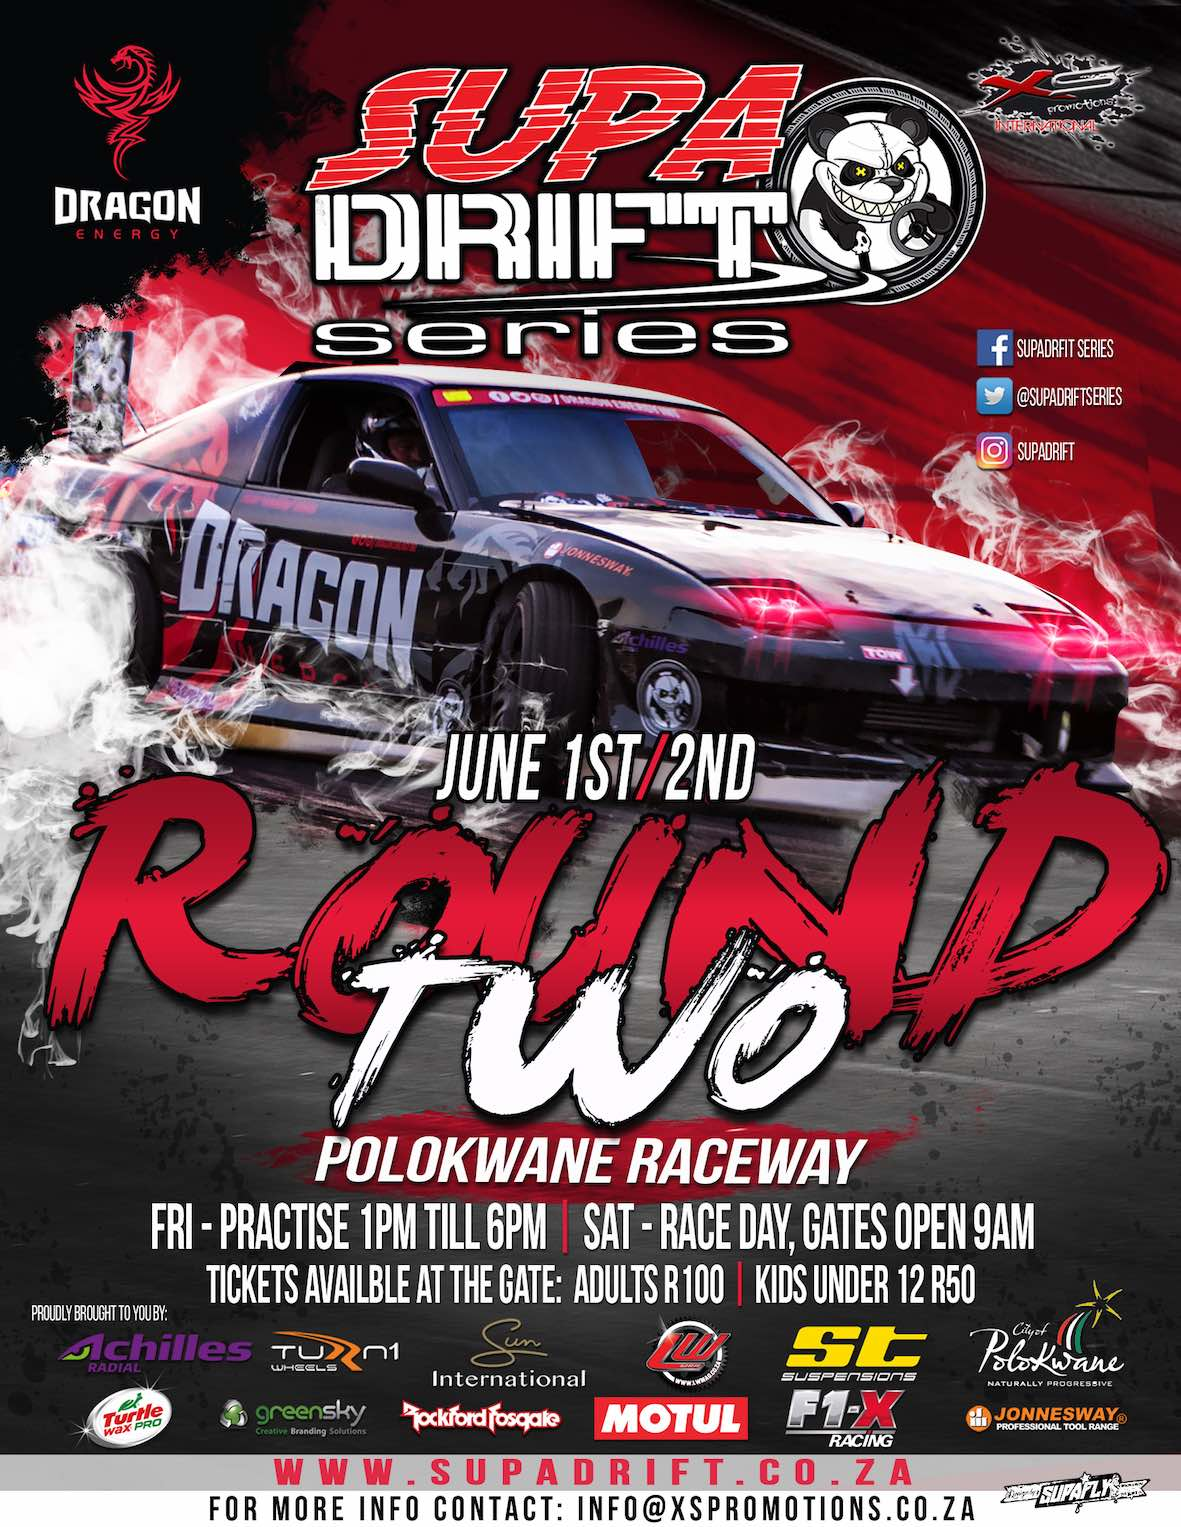 Drifting action comes to Polokwane for round 2 of the 2018 Supadrift Series